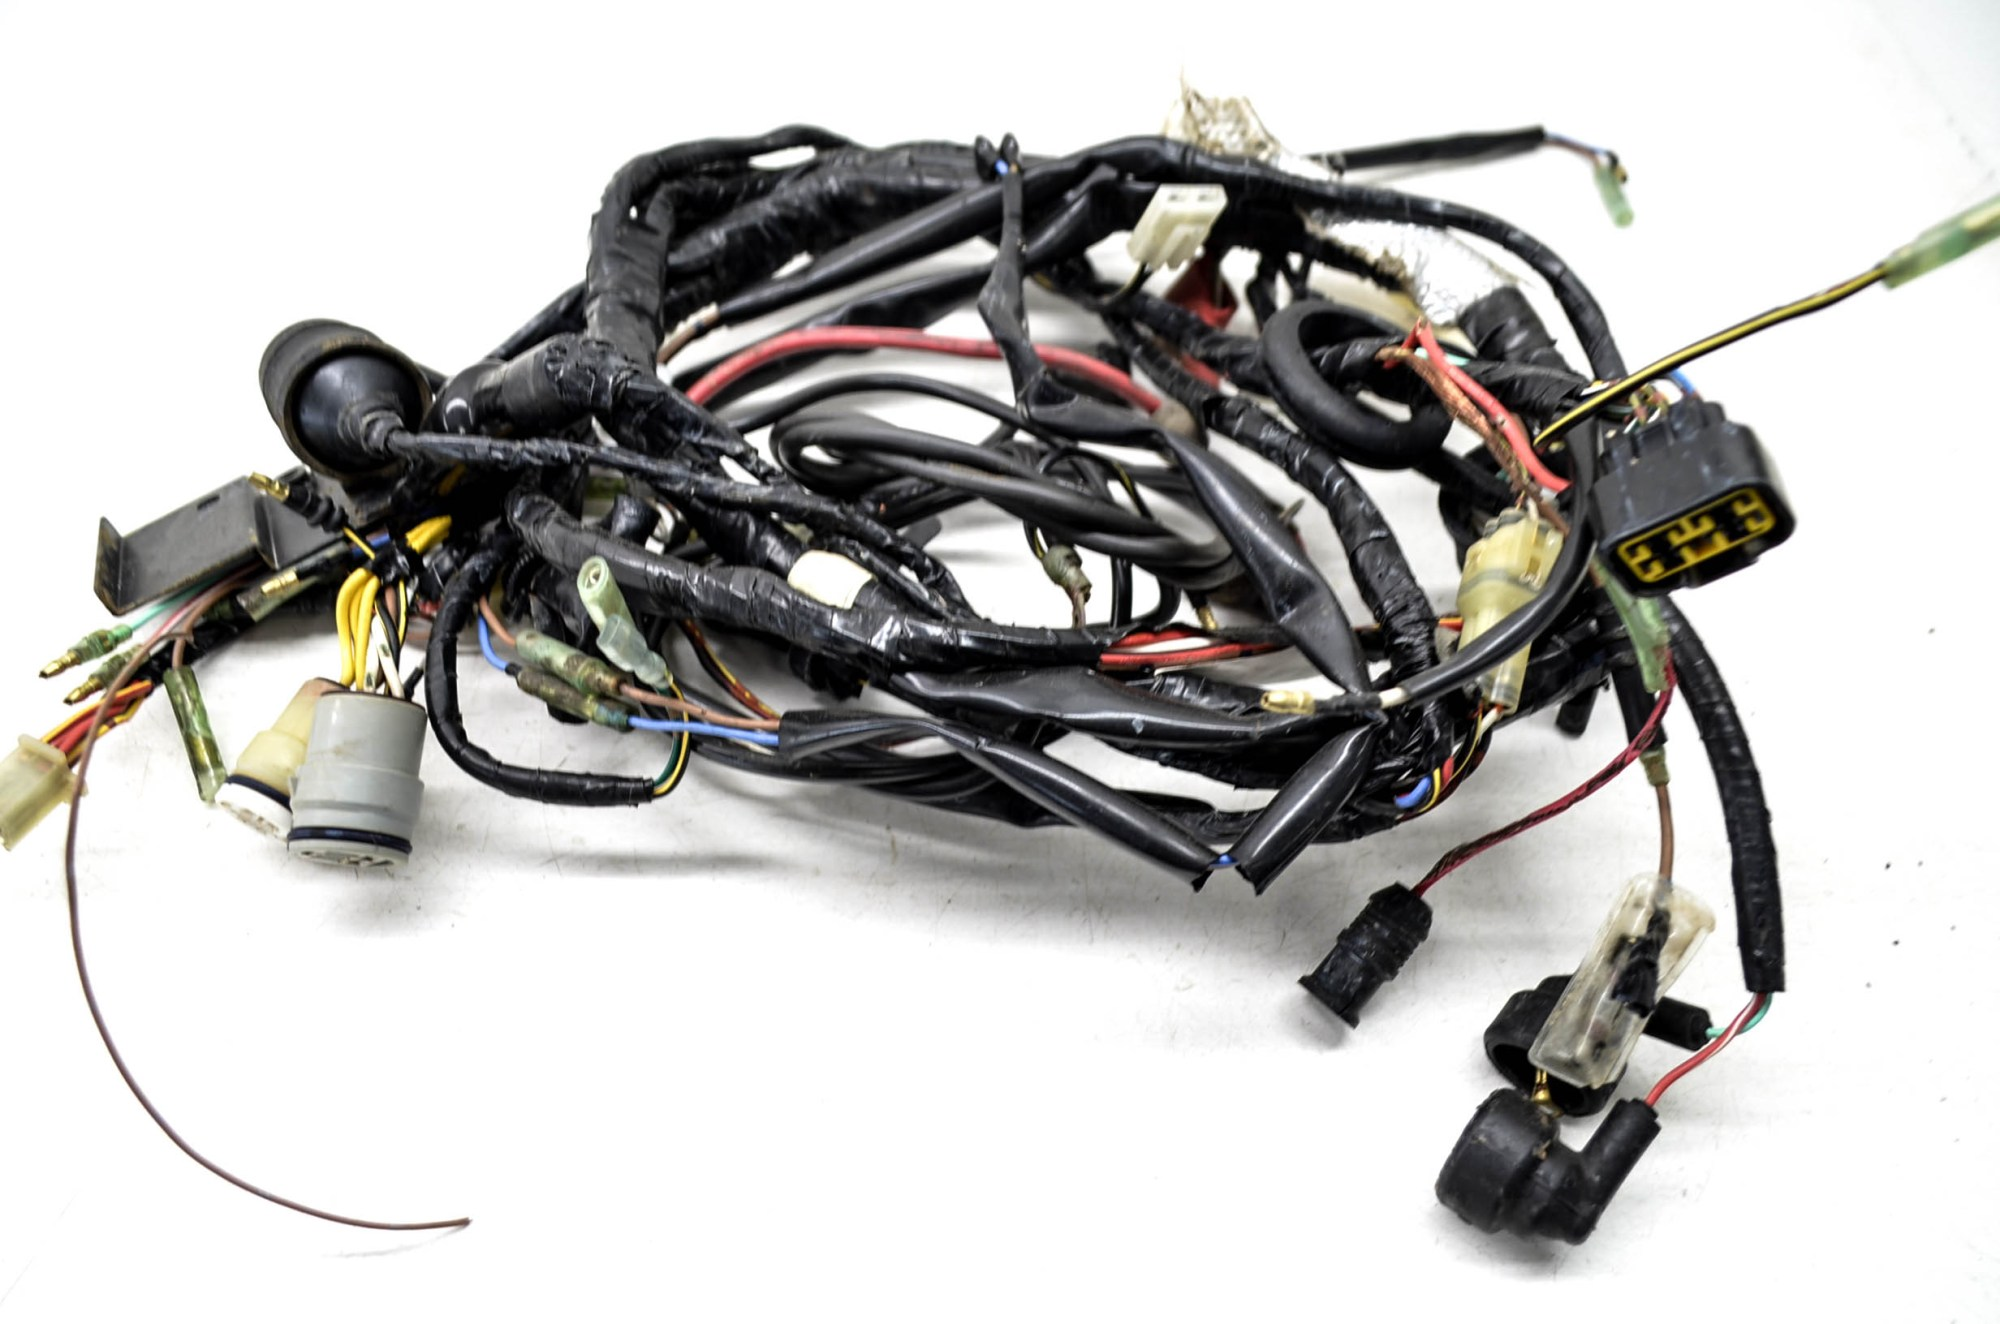 hight resolution of 02 kawasaki prairie 300 4x4 wire harness electrical wiring kvf300a